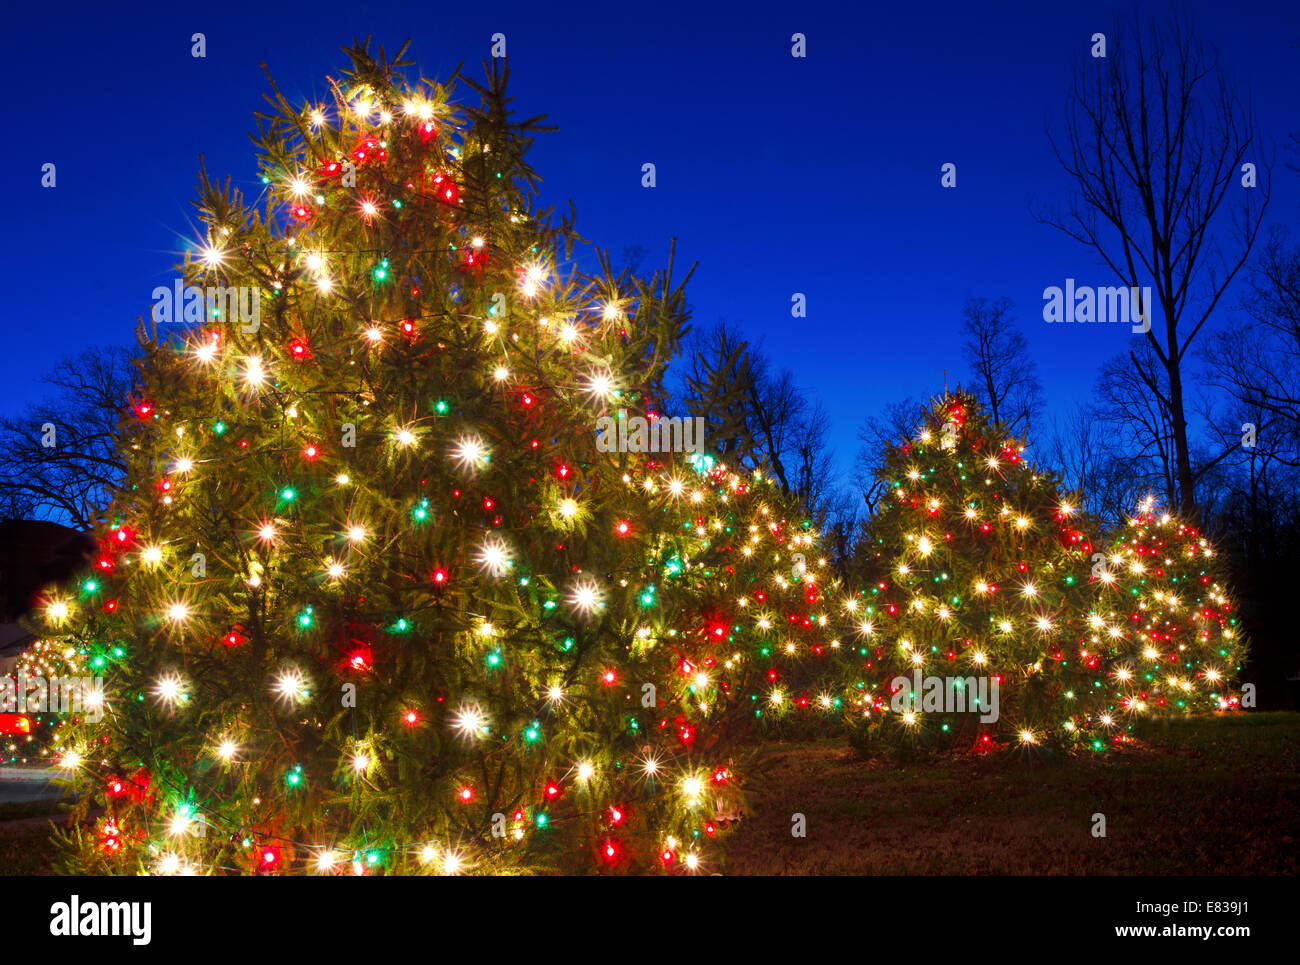 Red And White Christmas Lights.Outdoor Christmas Trees Have Been Decorated With Red And